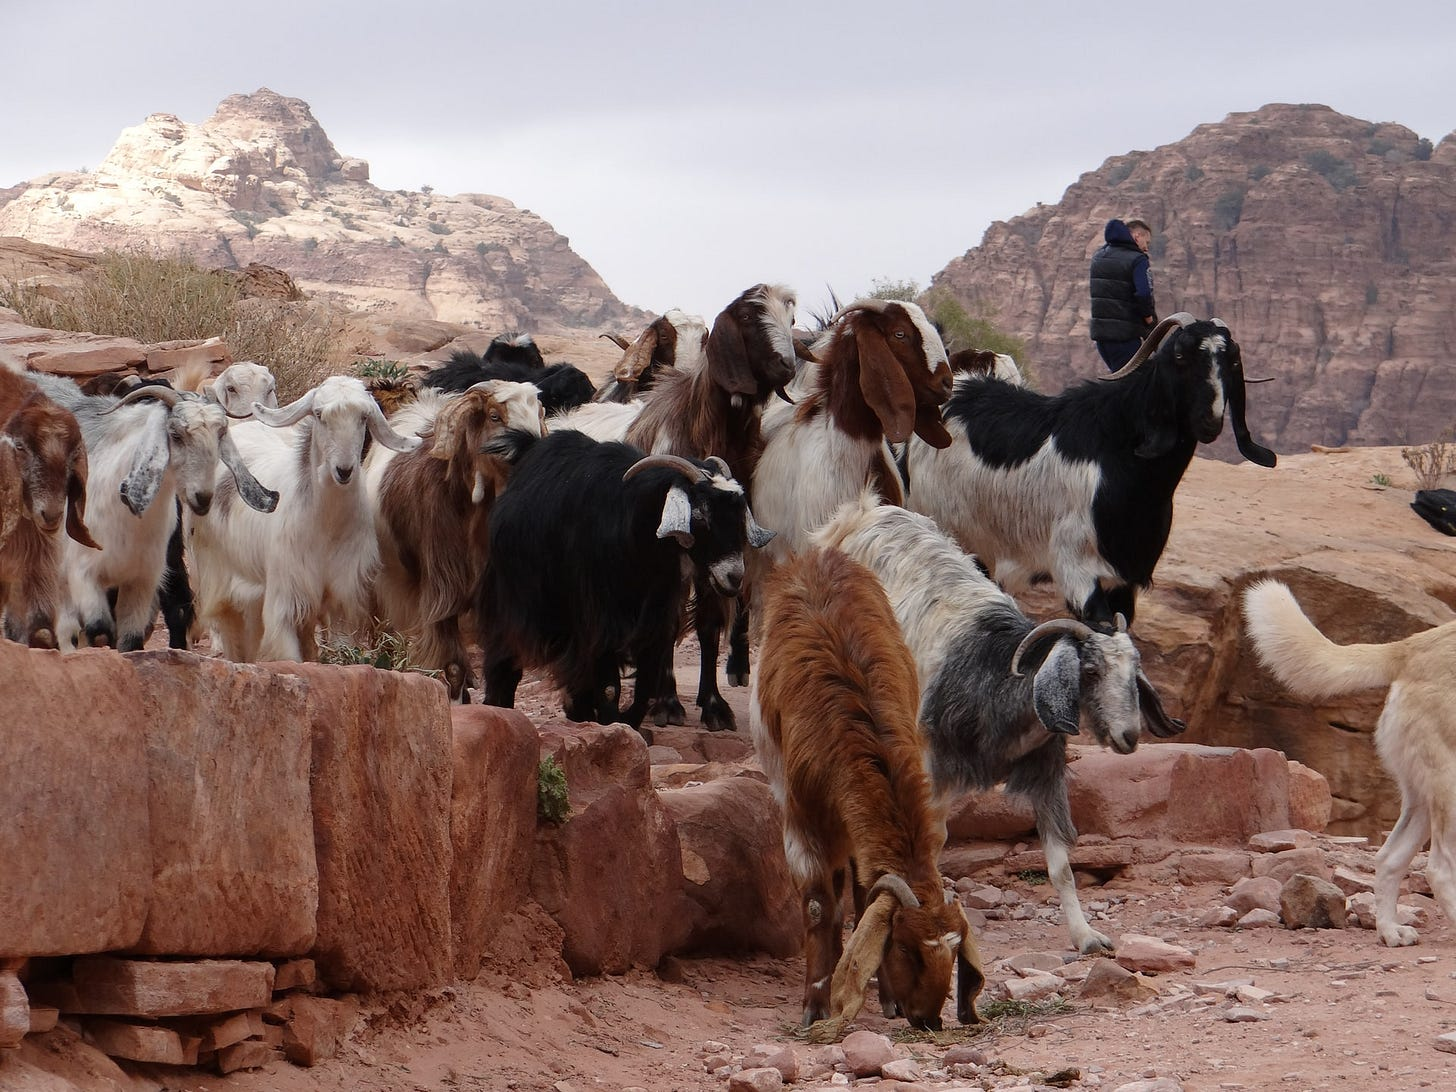 A group of goats on a rock outcrop in a desert, along with a human.